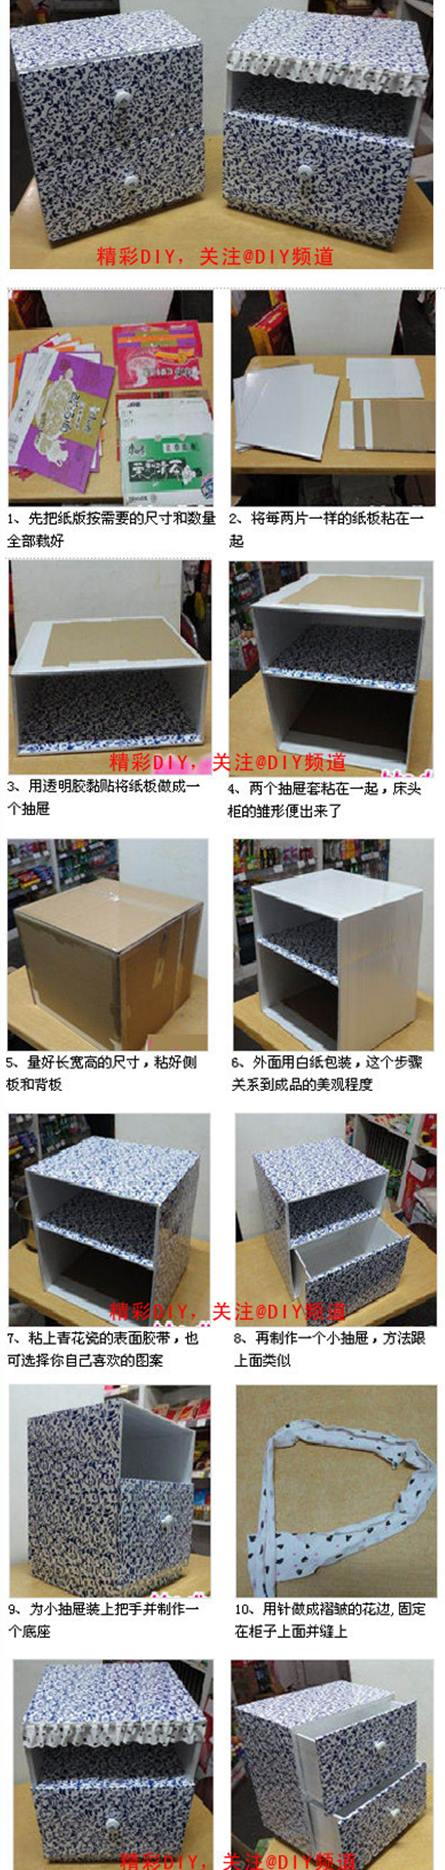 DIY-Carton-Bedside-Cabinet_large